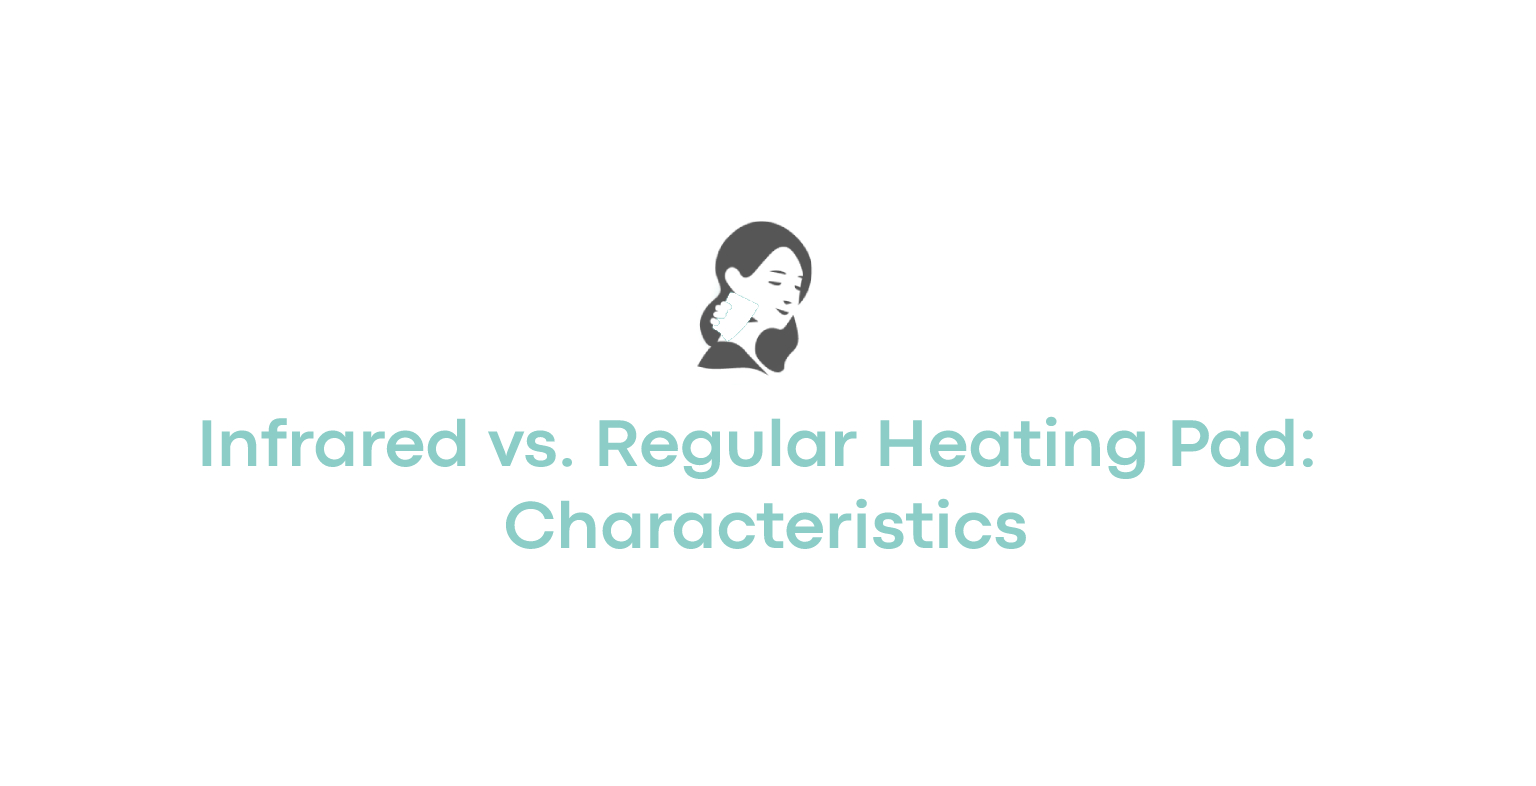 Infrared vs. Regular Heating Pad Characteristics